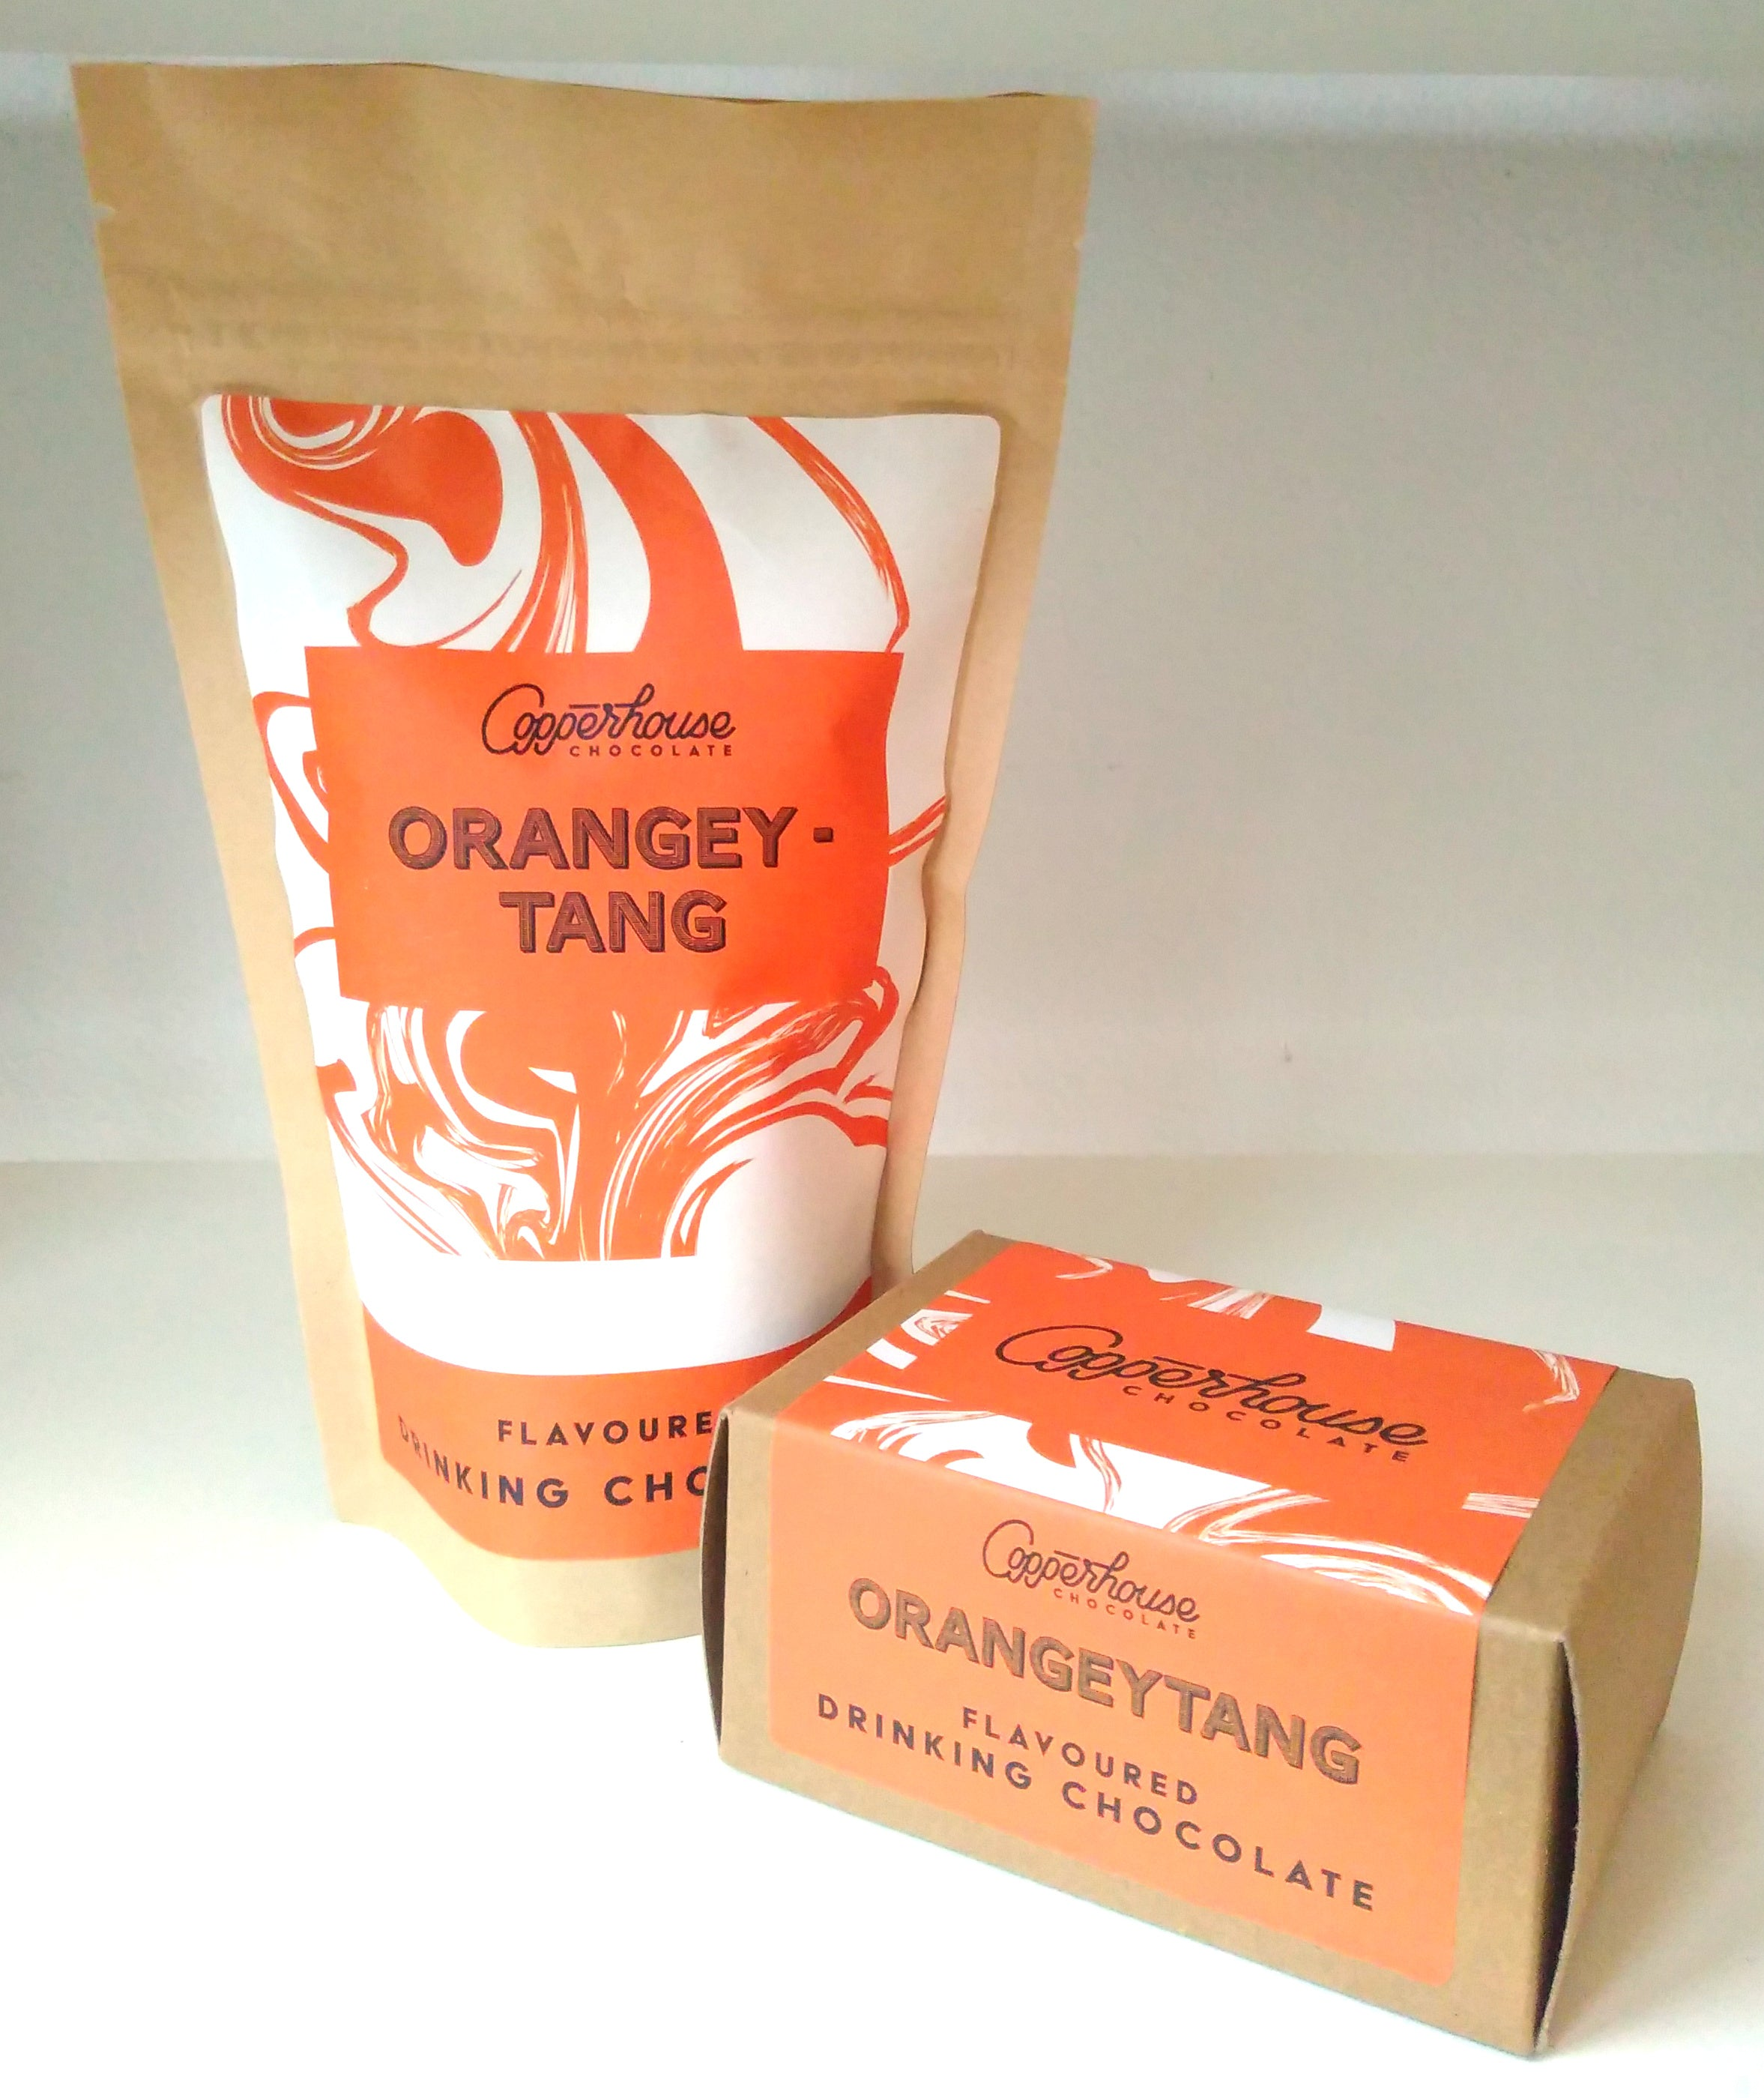 Orangeytang - orange flavoured drinking chocolate